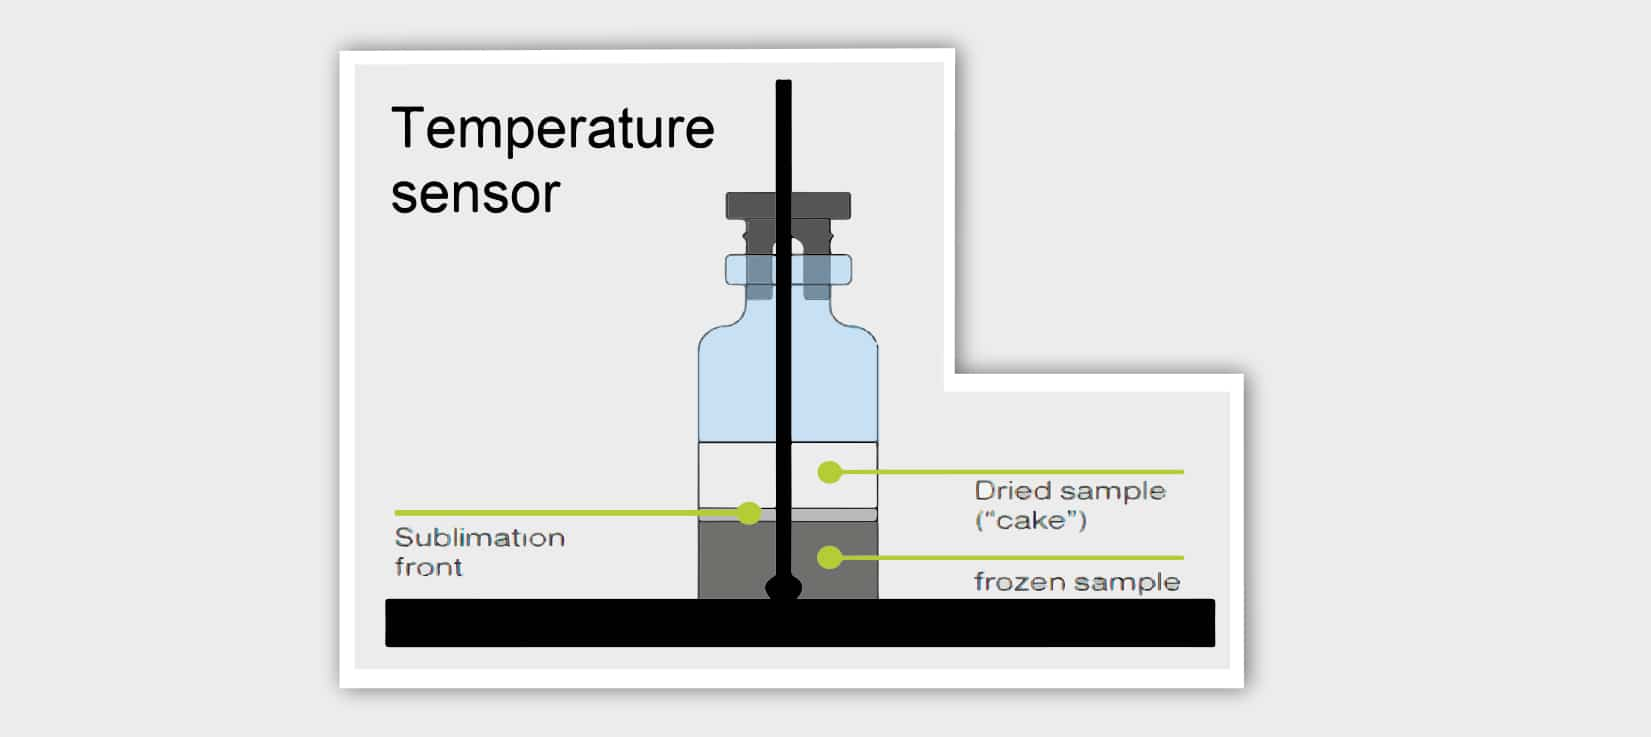 freeze-drying, endpoint determination, temperature sensor, thermocouple, dried sample,